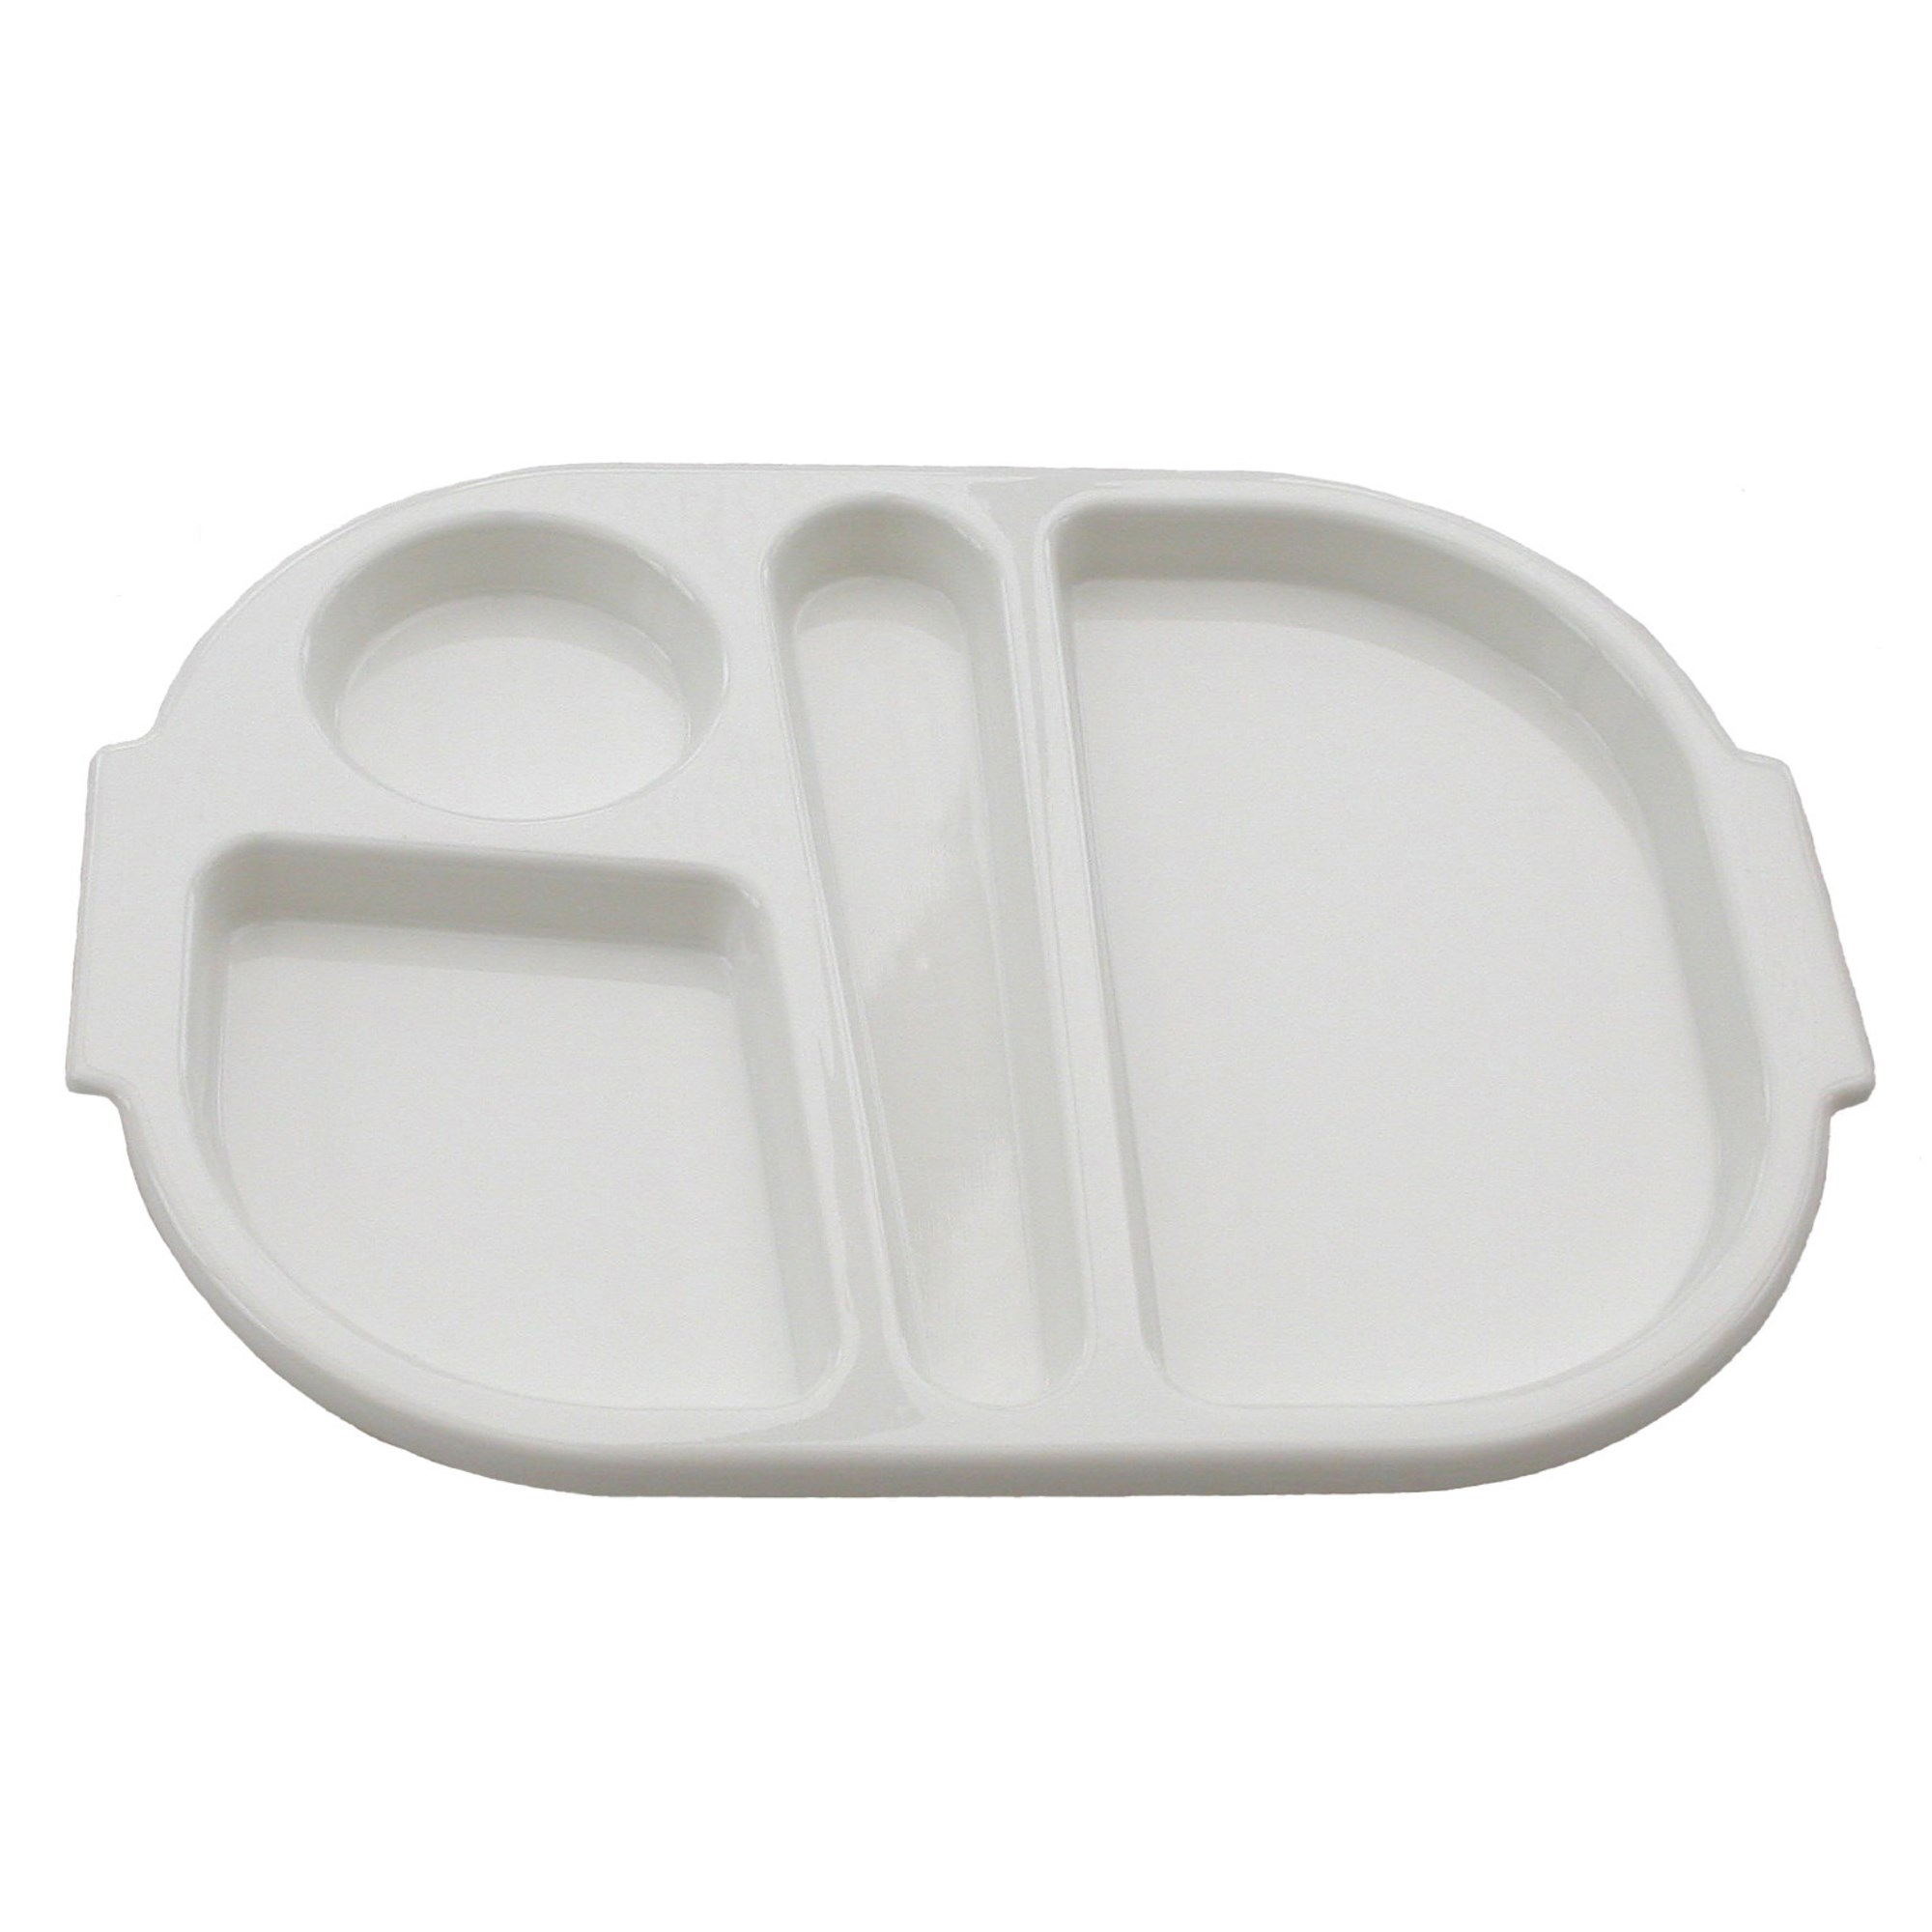 Harfield Polycarbonate Meal Tray Small White (Pack of 10)